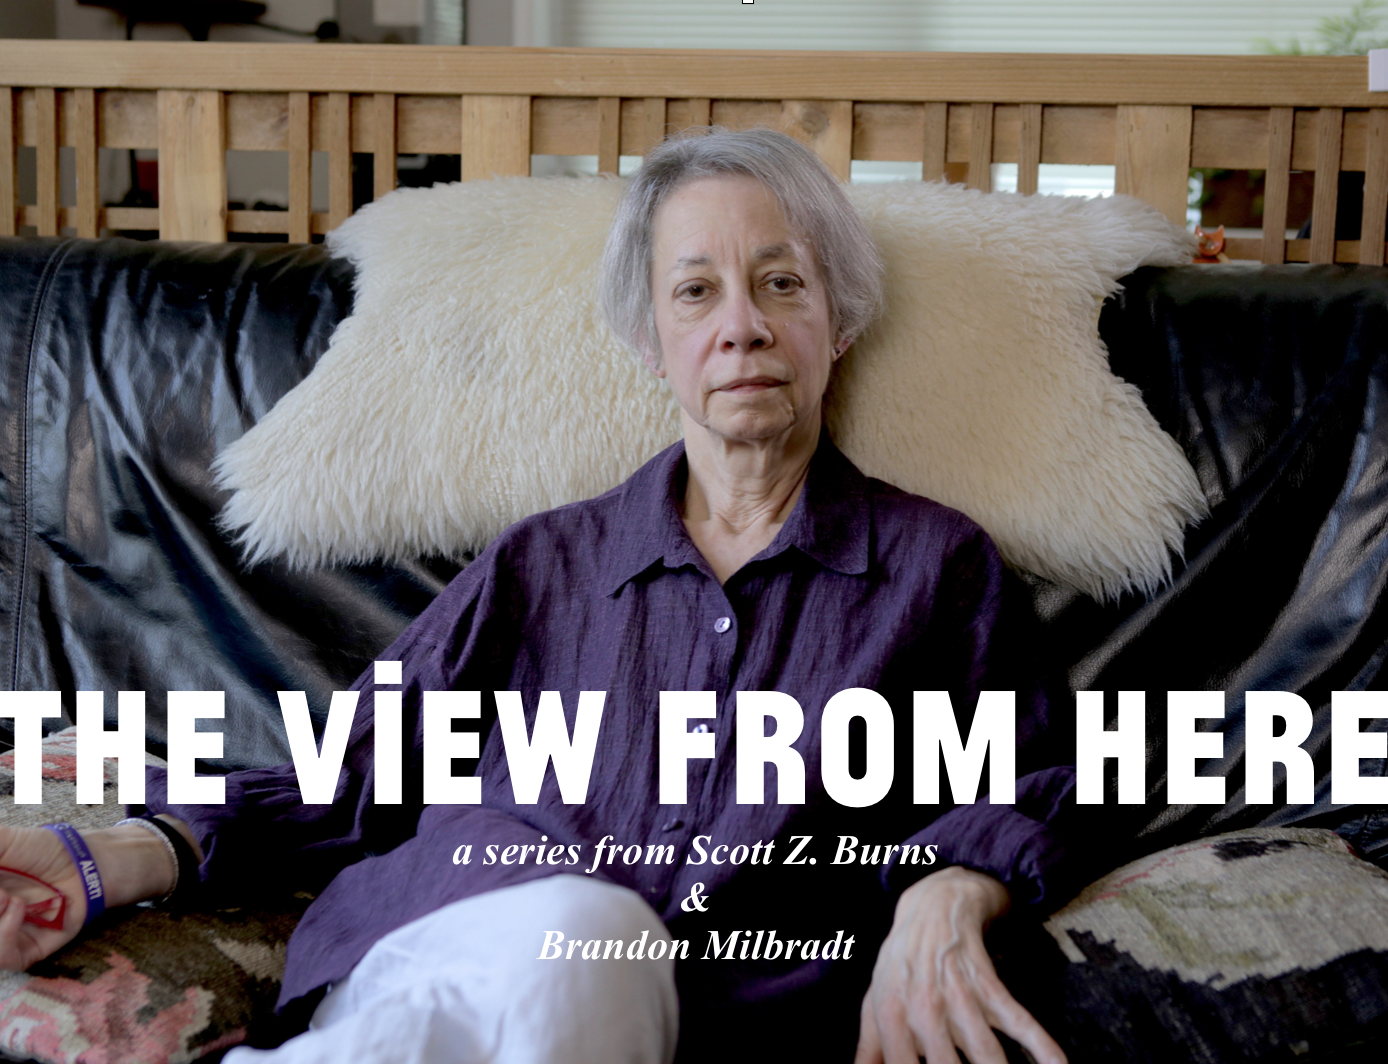 Linda is a 71year old woman with metastatic breast cancer.